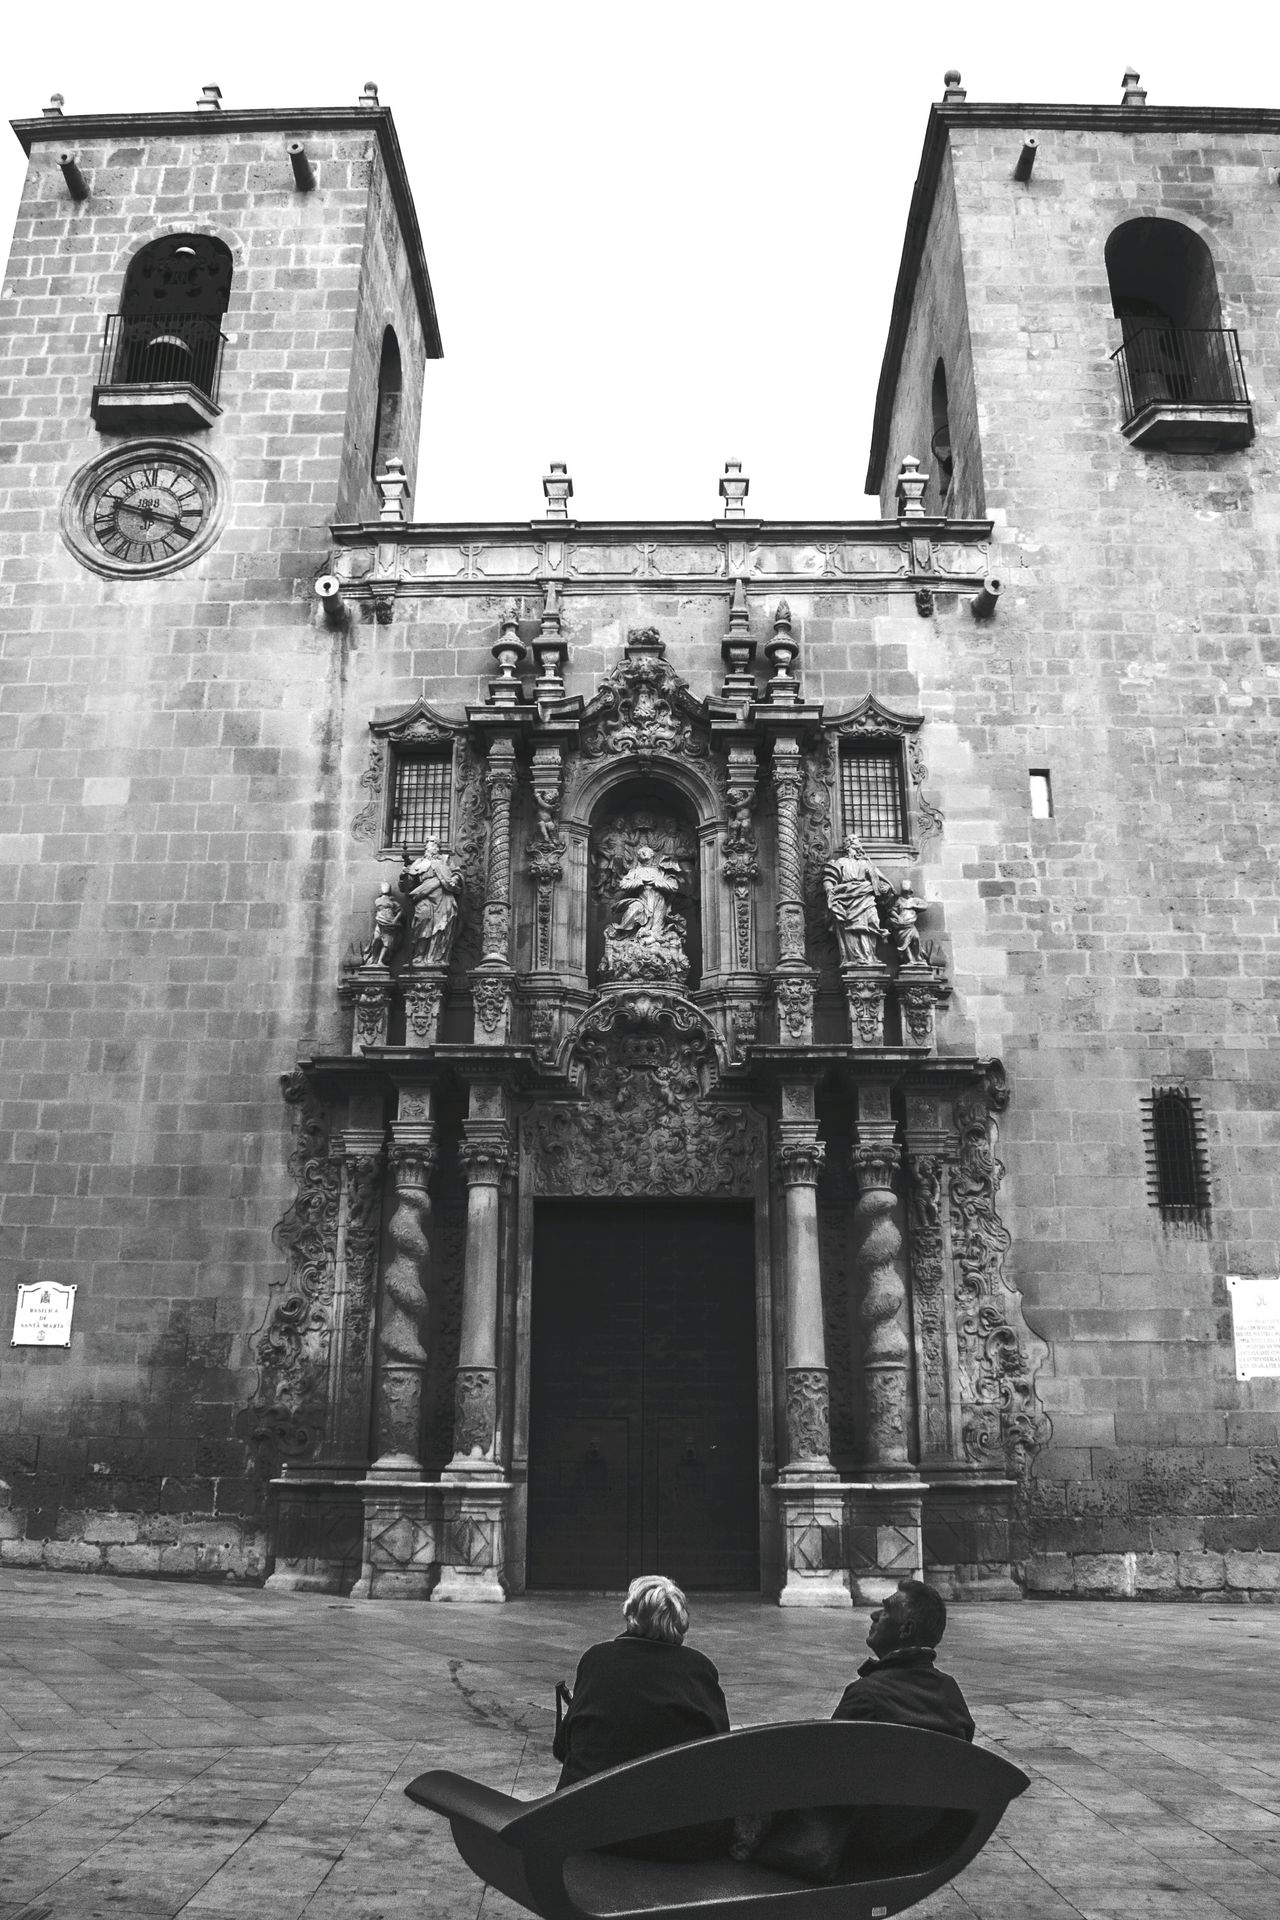 Bells CHURCHILL Churchills Churchillcollege Blackandwhite Blach&white Blackandwhite Photography EyeEm Best Shots Alicante Alicante, Spain SPAIN Religion Religious Art Religious Architecture Religious Icons Columns Door Antique Watch Place Of Interest Basilica De Santa Maria Churchill Downs Column Arquitecture ArquiteturaeUrbanismo Antique Building